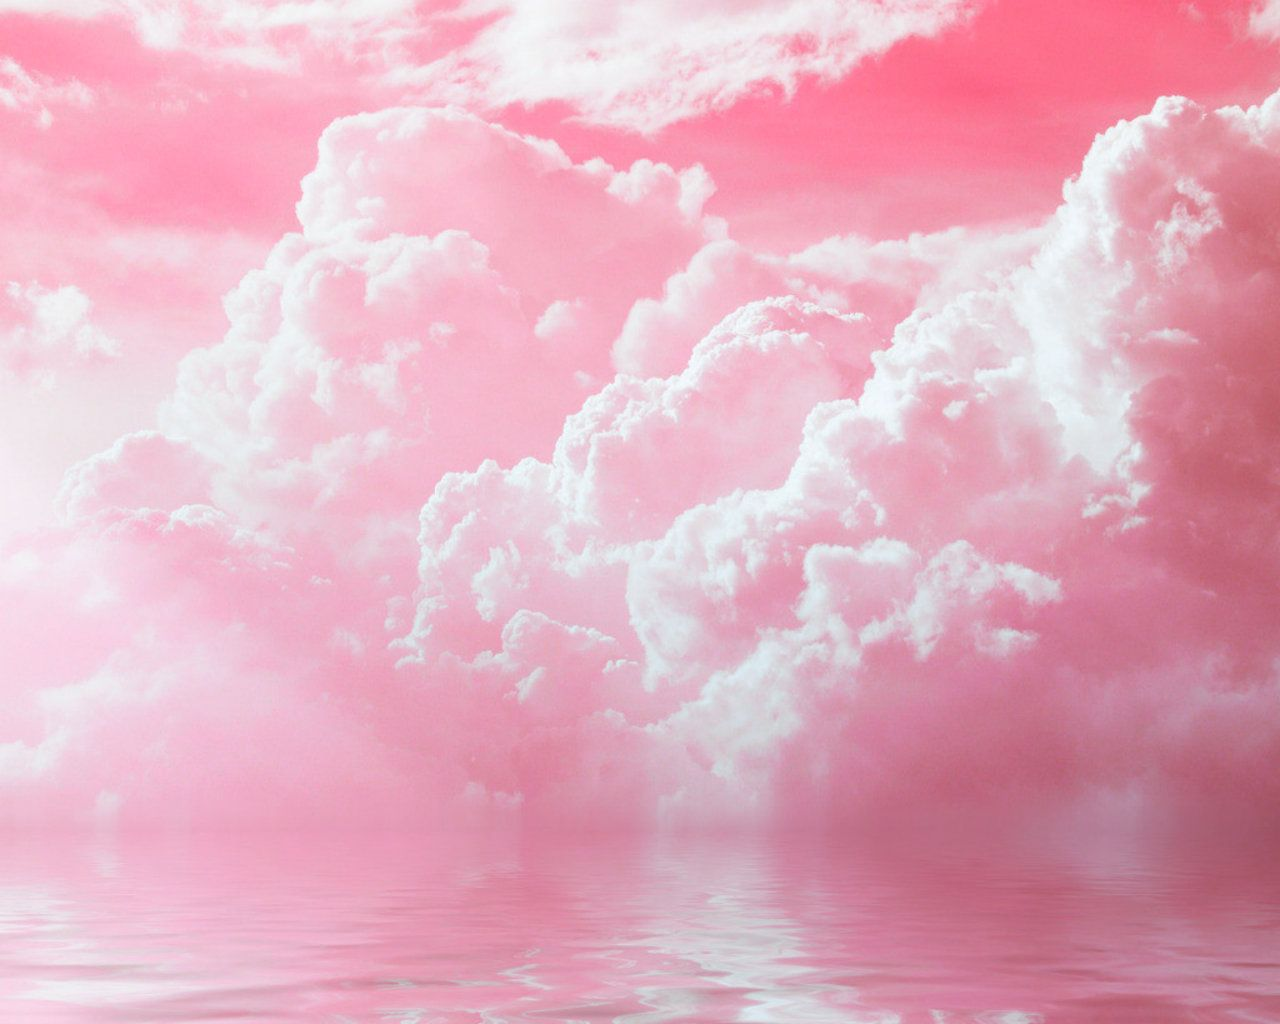 Pink Sky Amazing Pink Clouds Water Sky Nature Hd Wallpaper